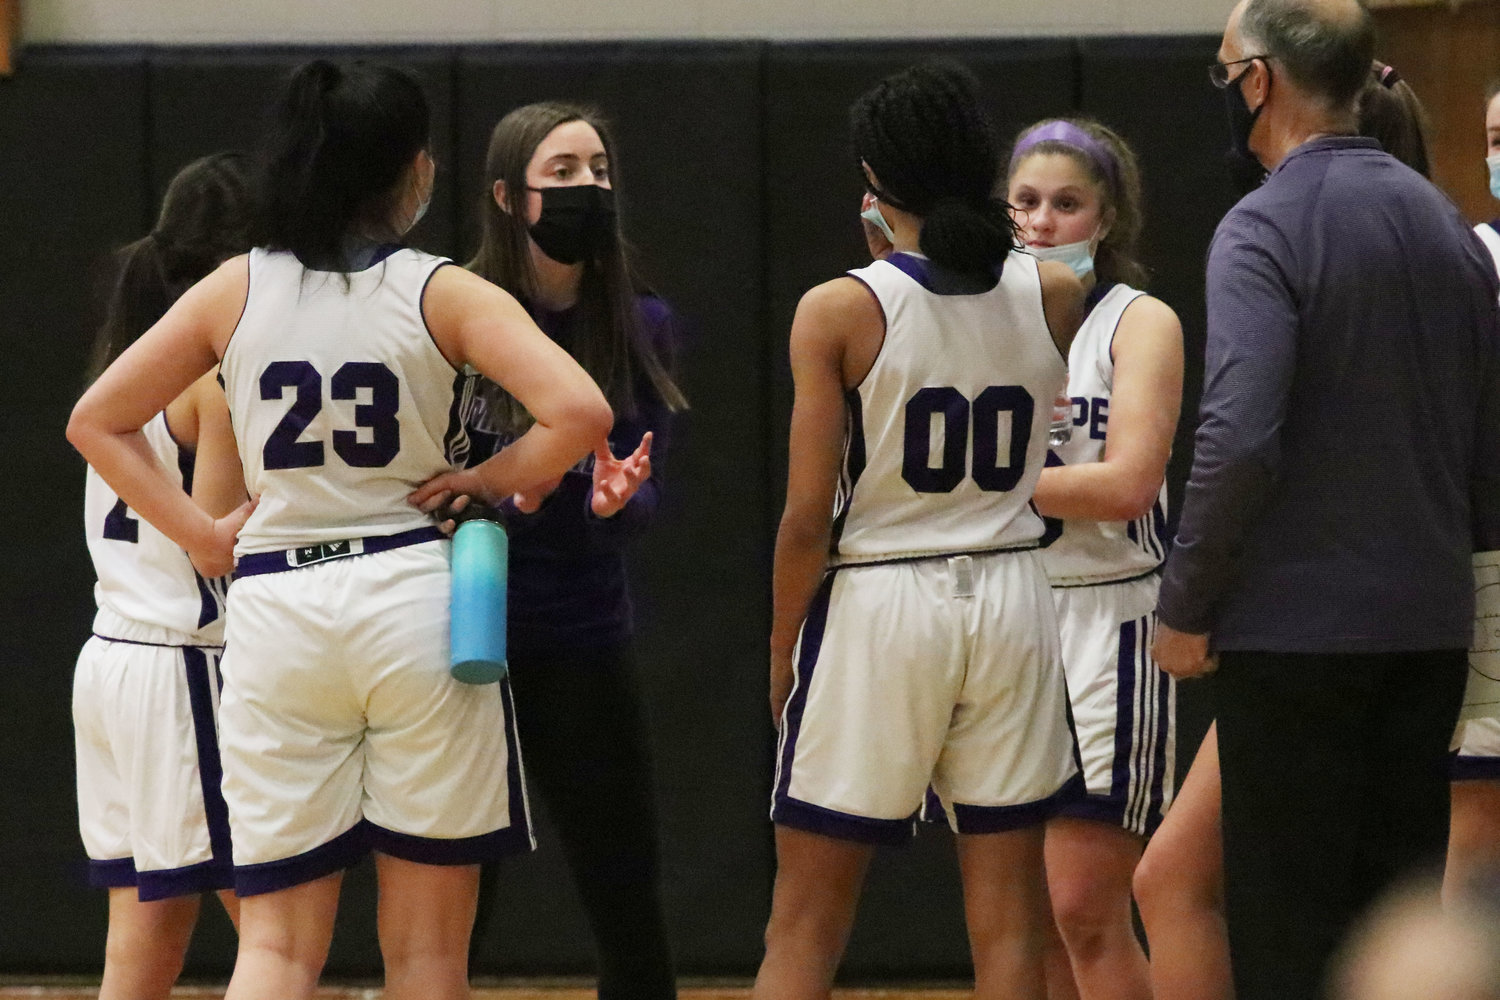 Coach Katie Kline speaks to the team during a time out in the first half.